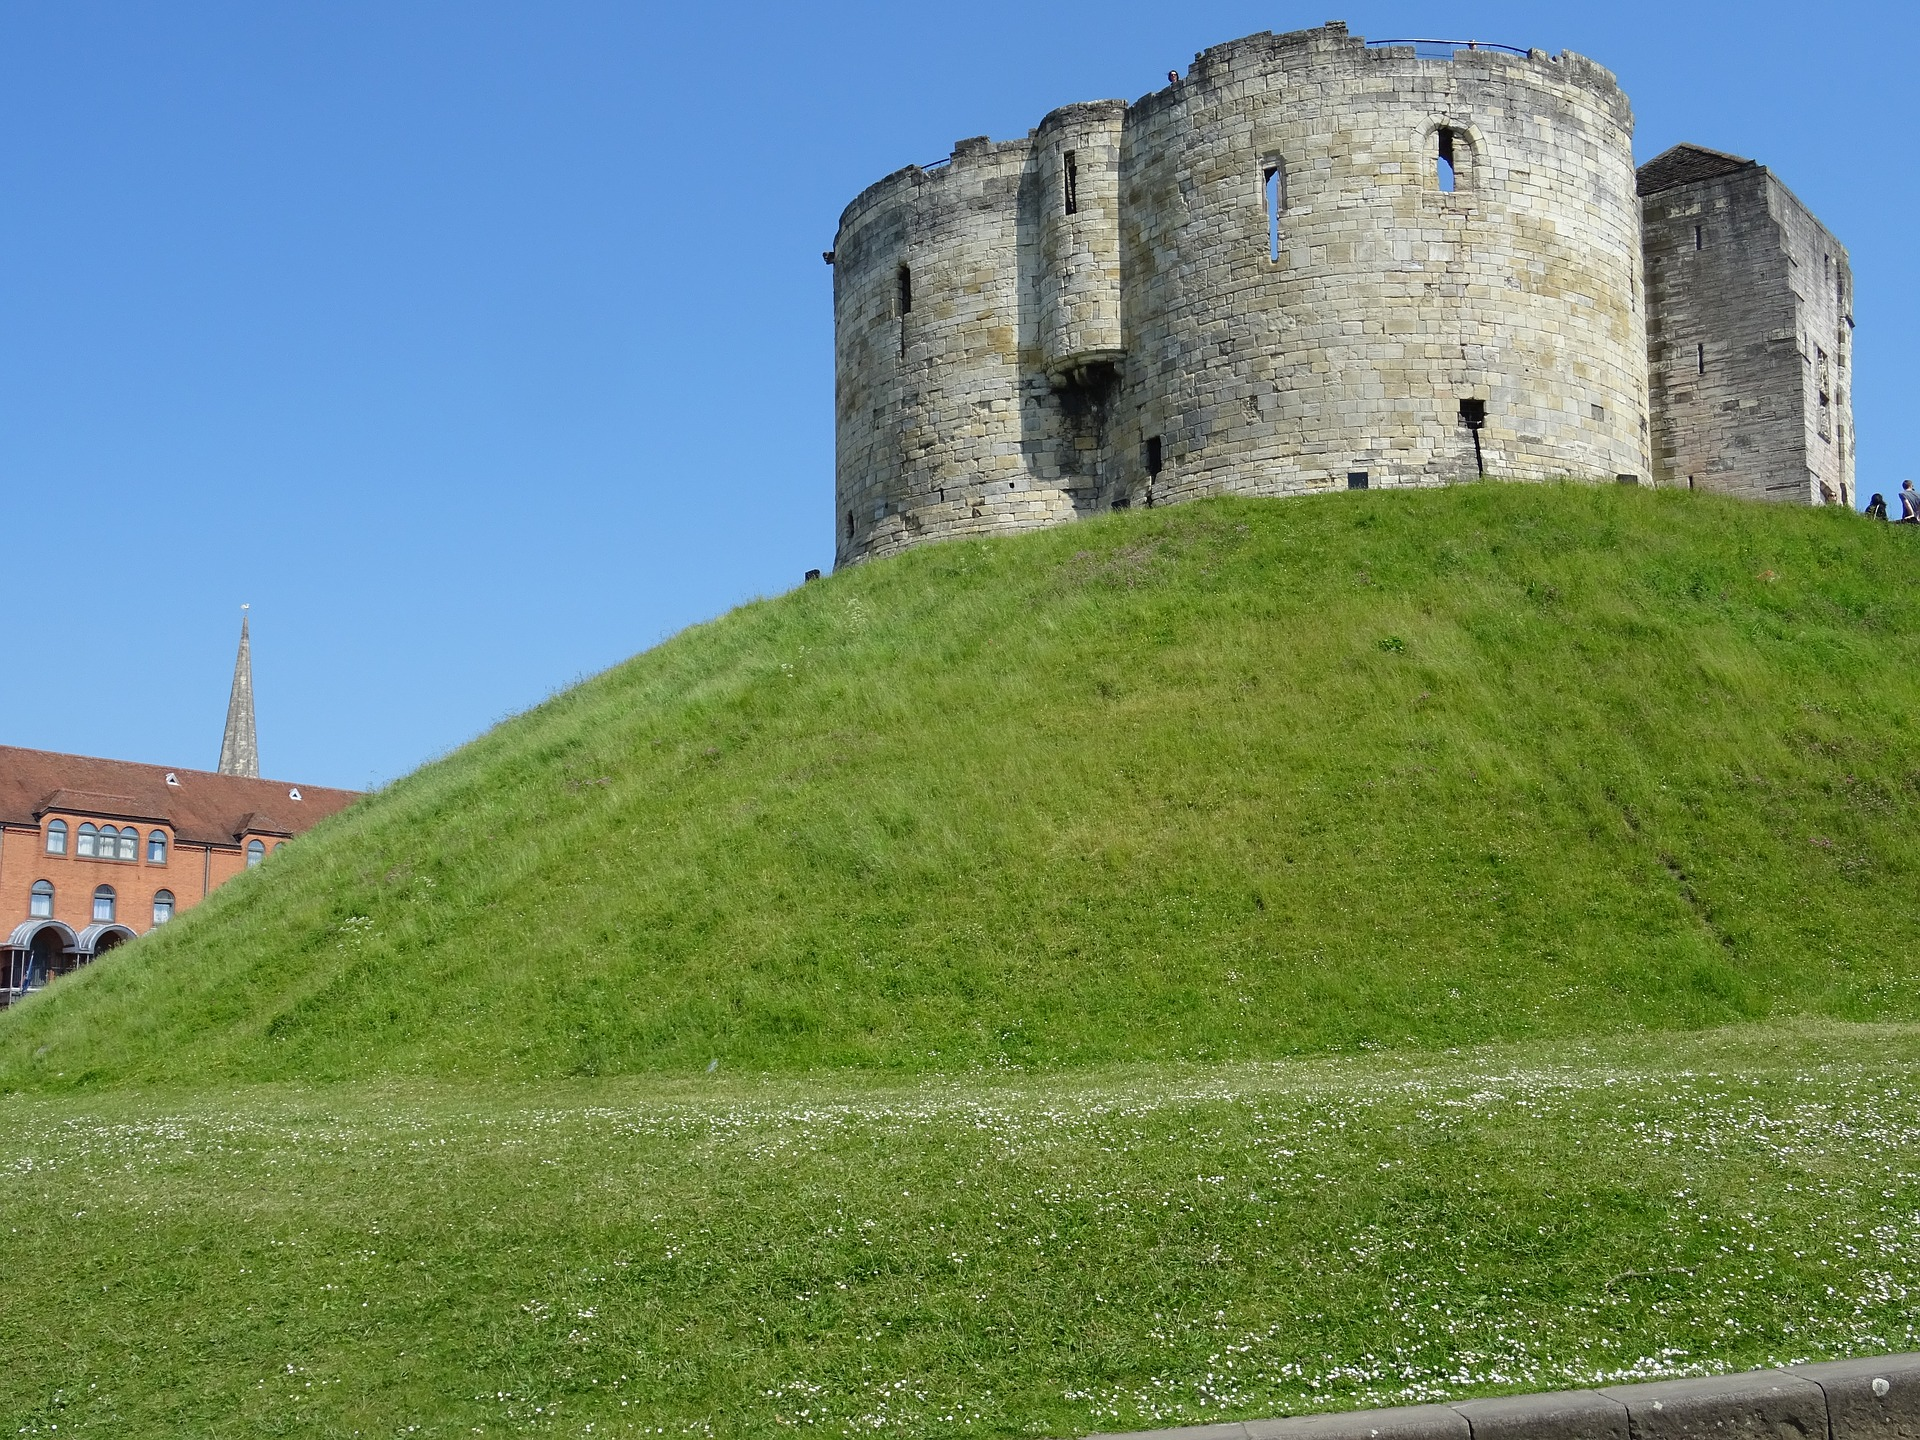 best things to do in york, york itinerary, stuff to do in york, what to do around york, york castle, cliffords tower